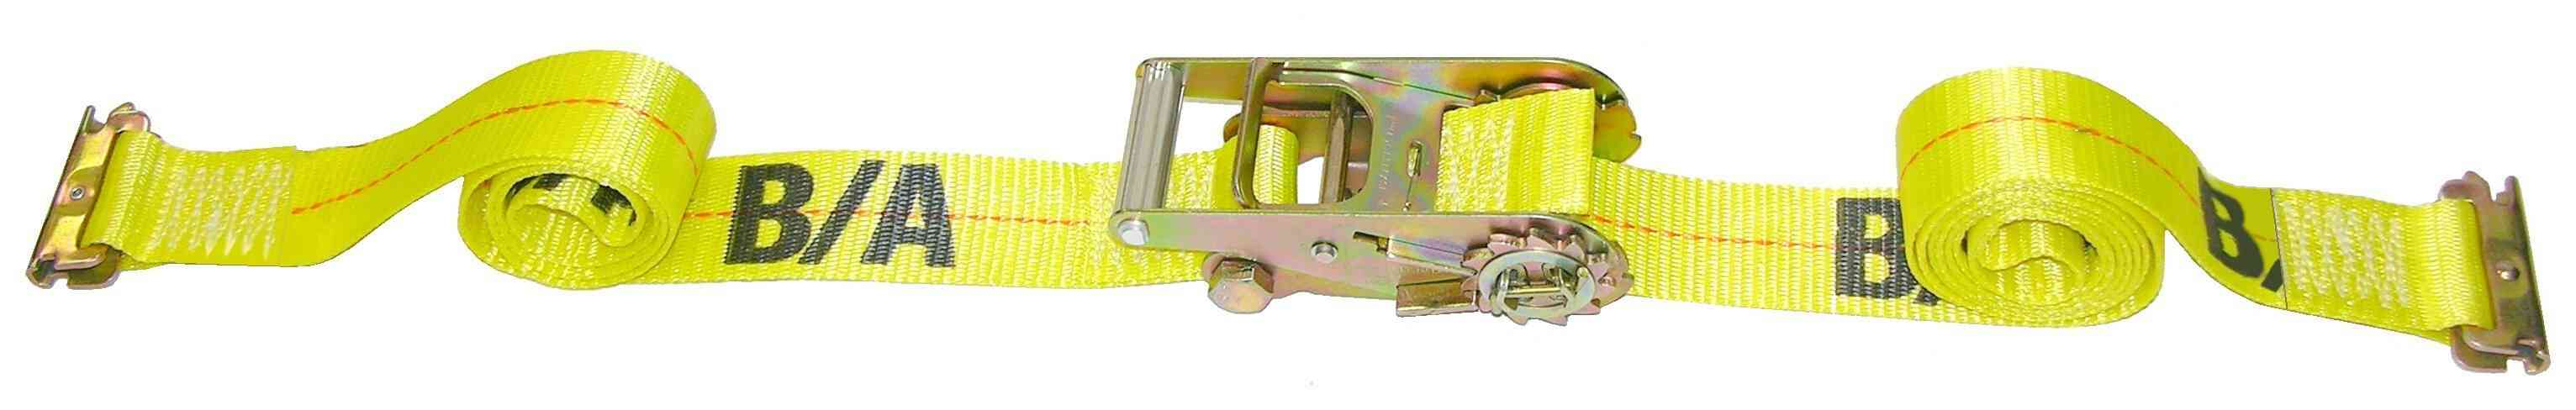 2IN x 12FT E TRACK STRAP W/RATCHET 38-ETR-12